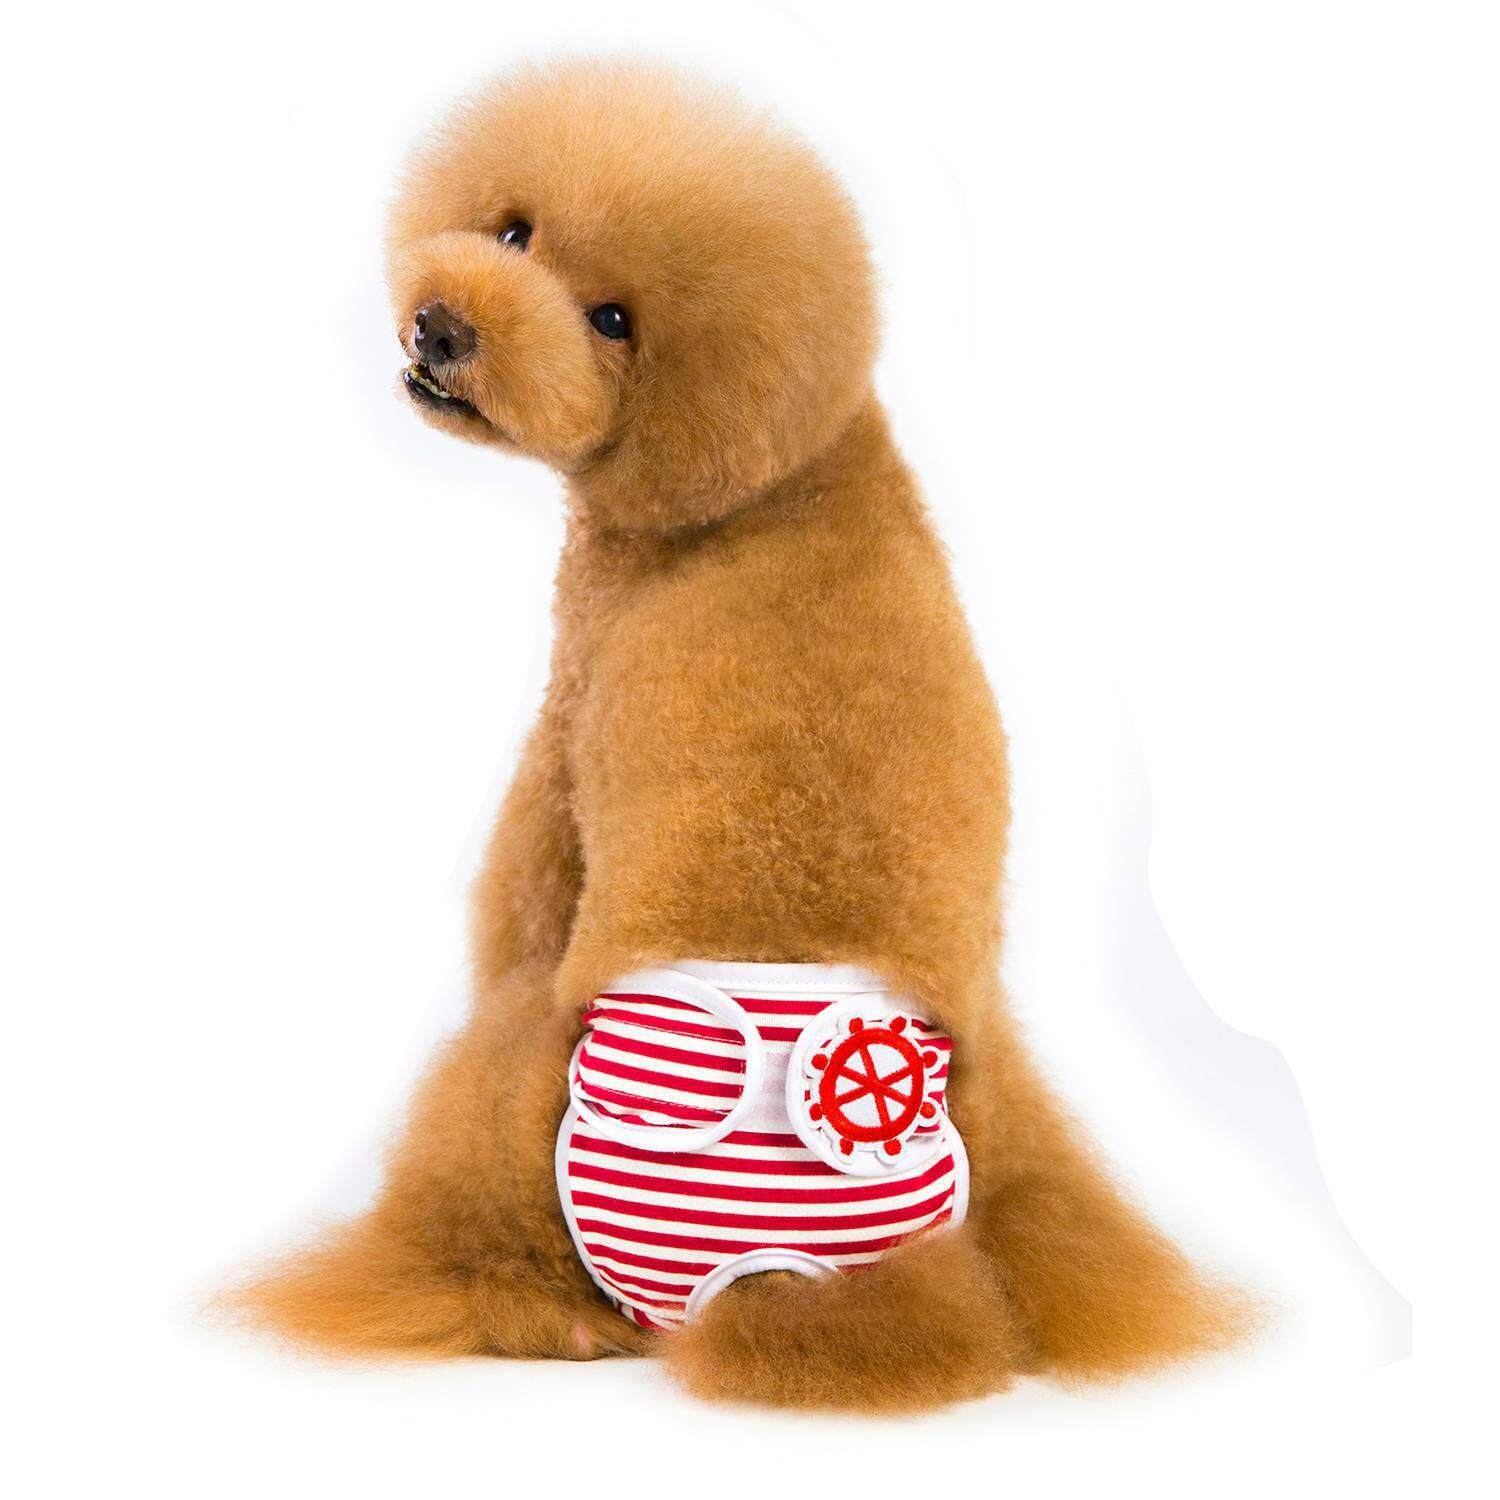 Go-fifteen Reusable Washable Dog Diapers of Durable Doggie Diapers,Comfy And Stylish Dog